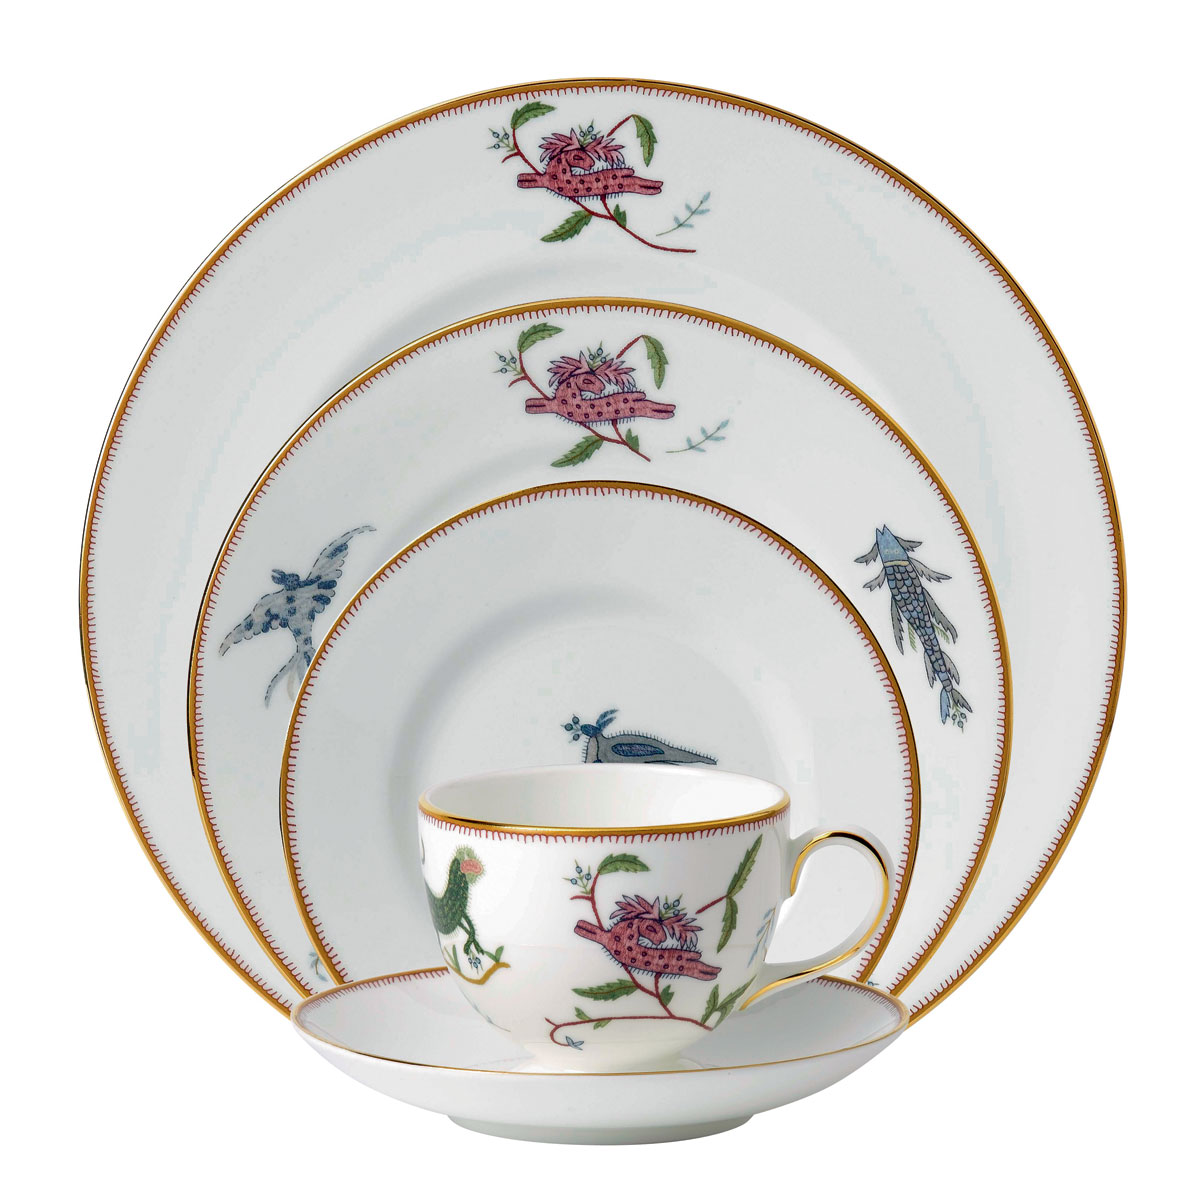 Wedgwood Mythical Creatures 5 Piece Place Setting